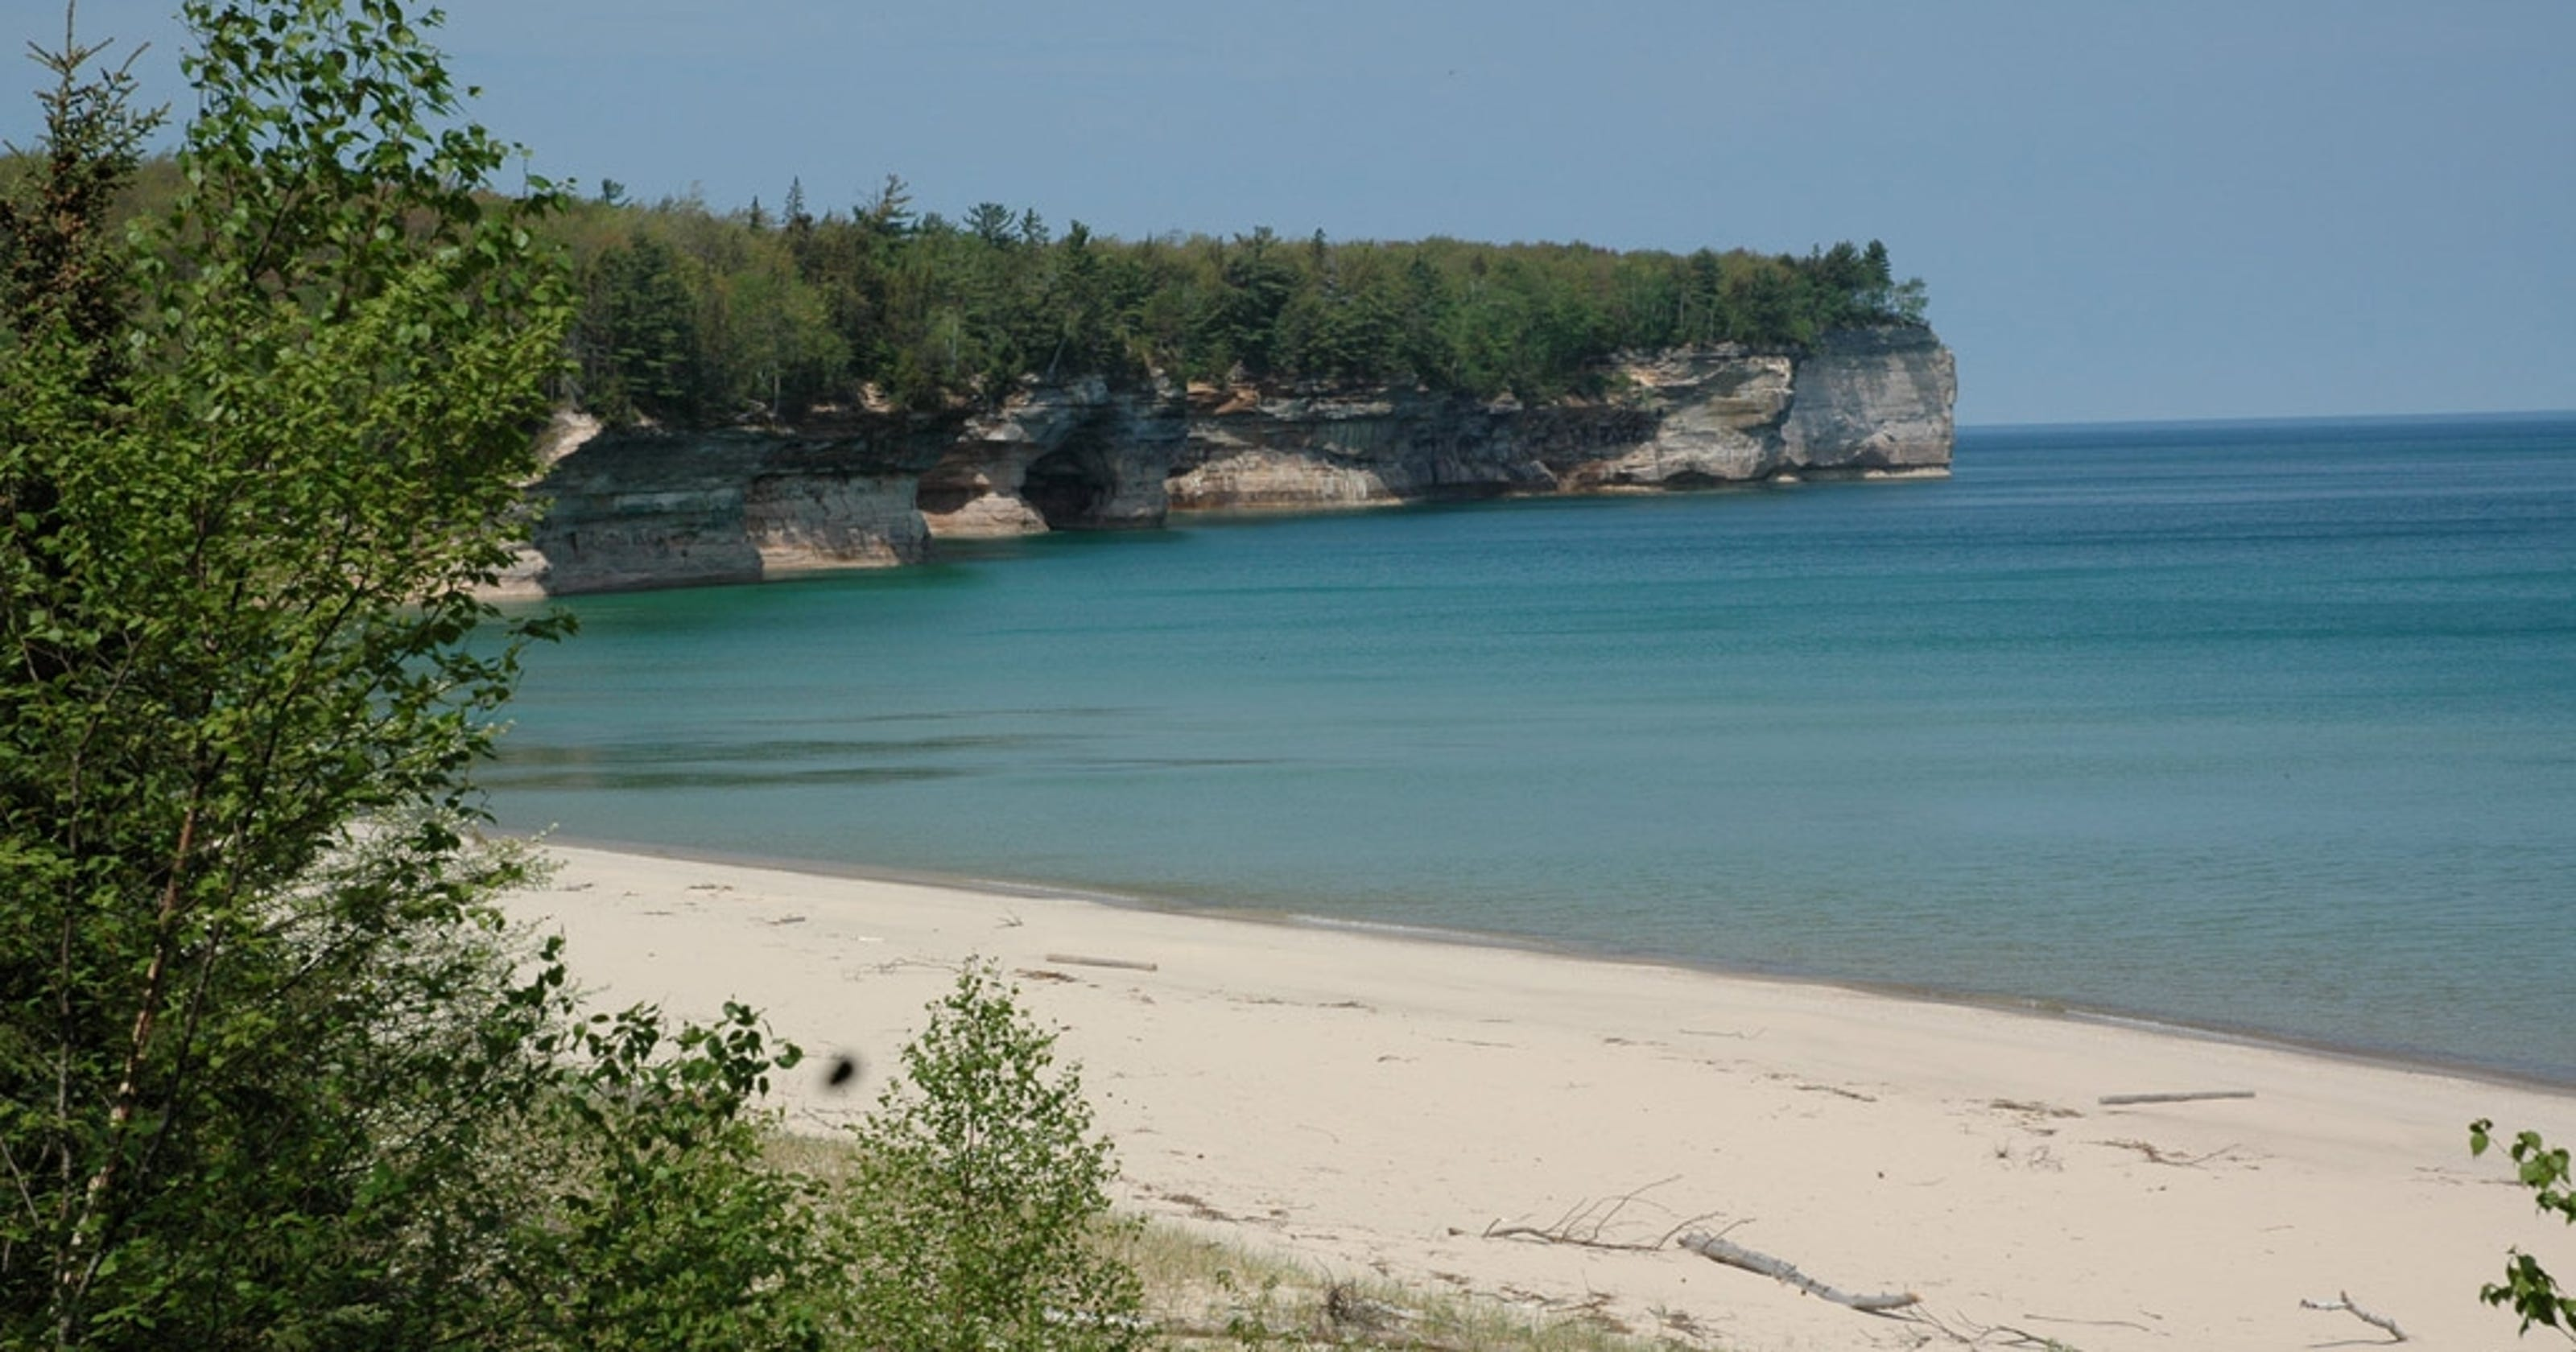 Woman falls to her death taking selfies at Pictured Rocks